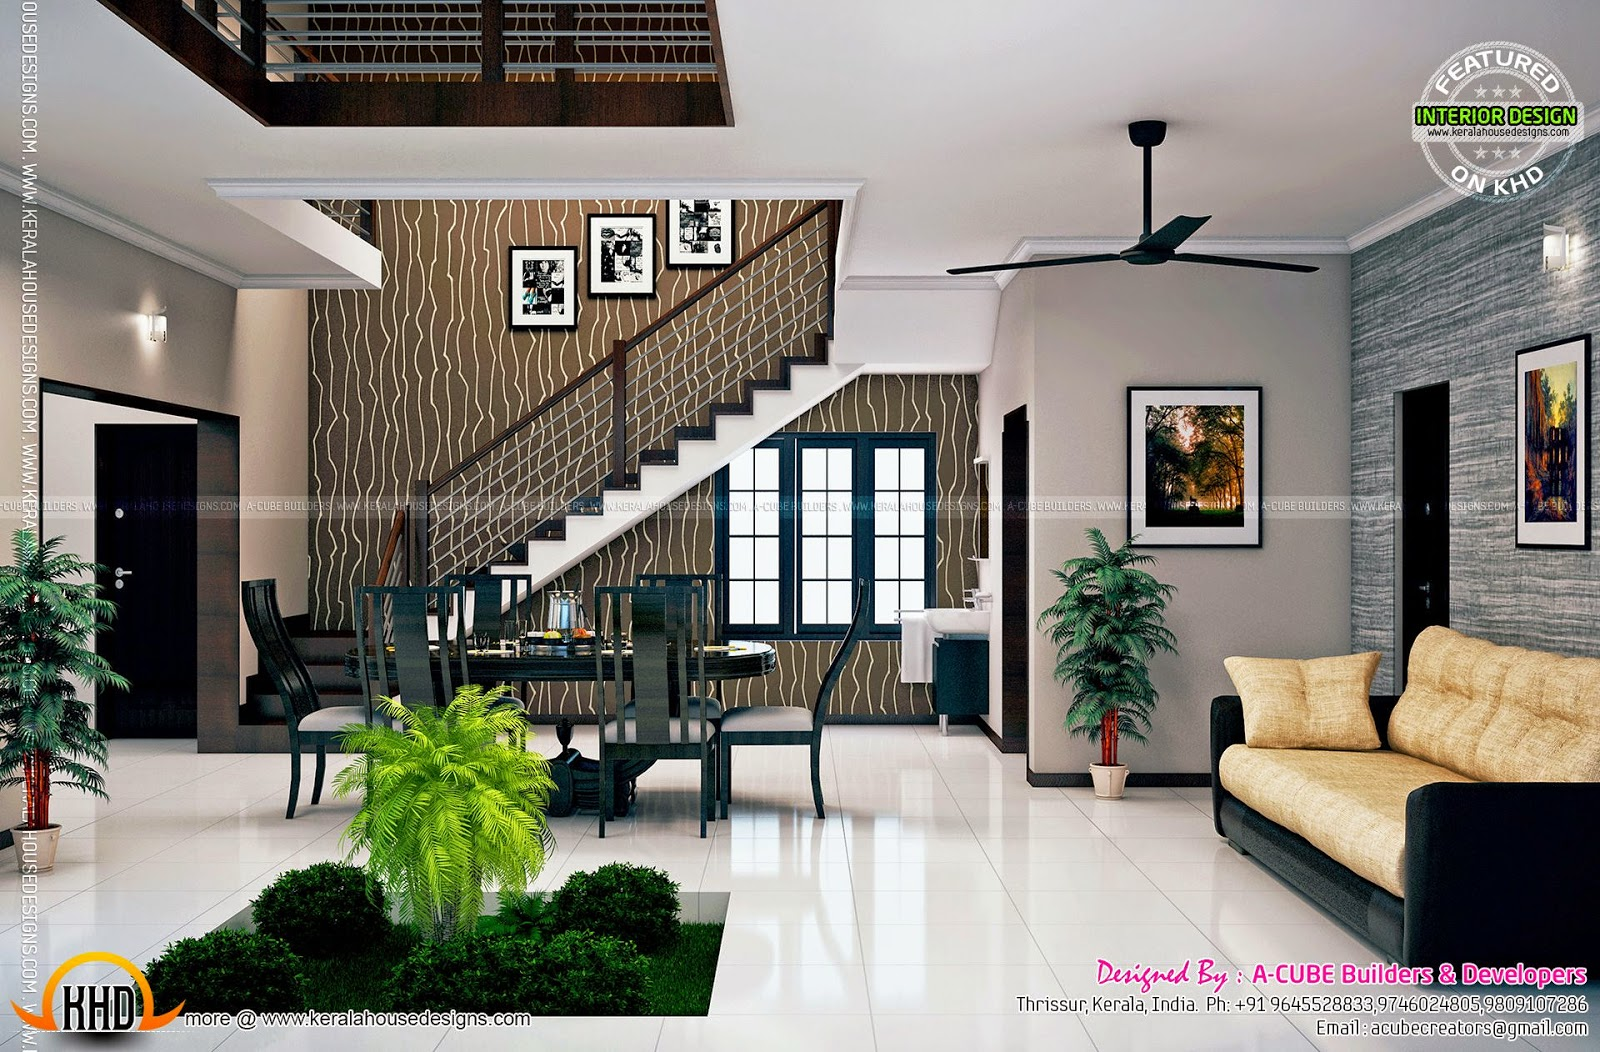 Kerala interior design ideas kerala home design and for Dining hall design ideas